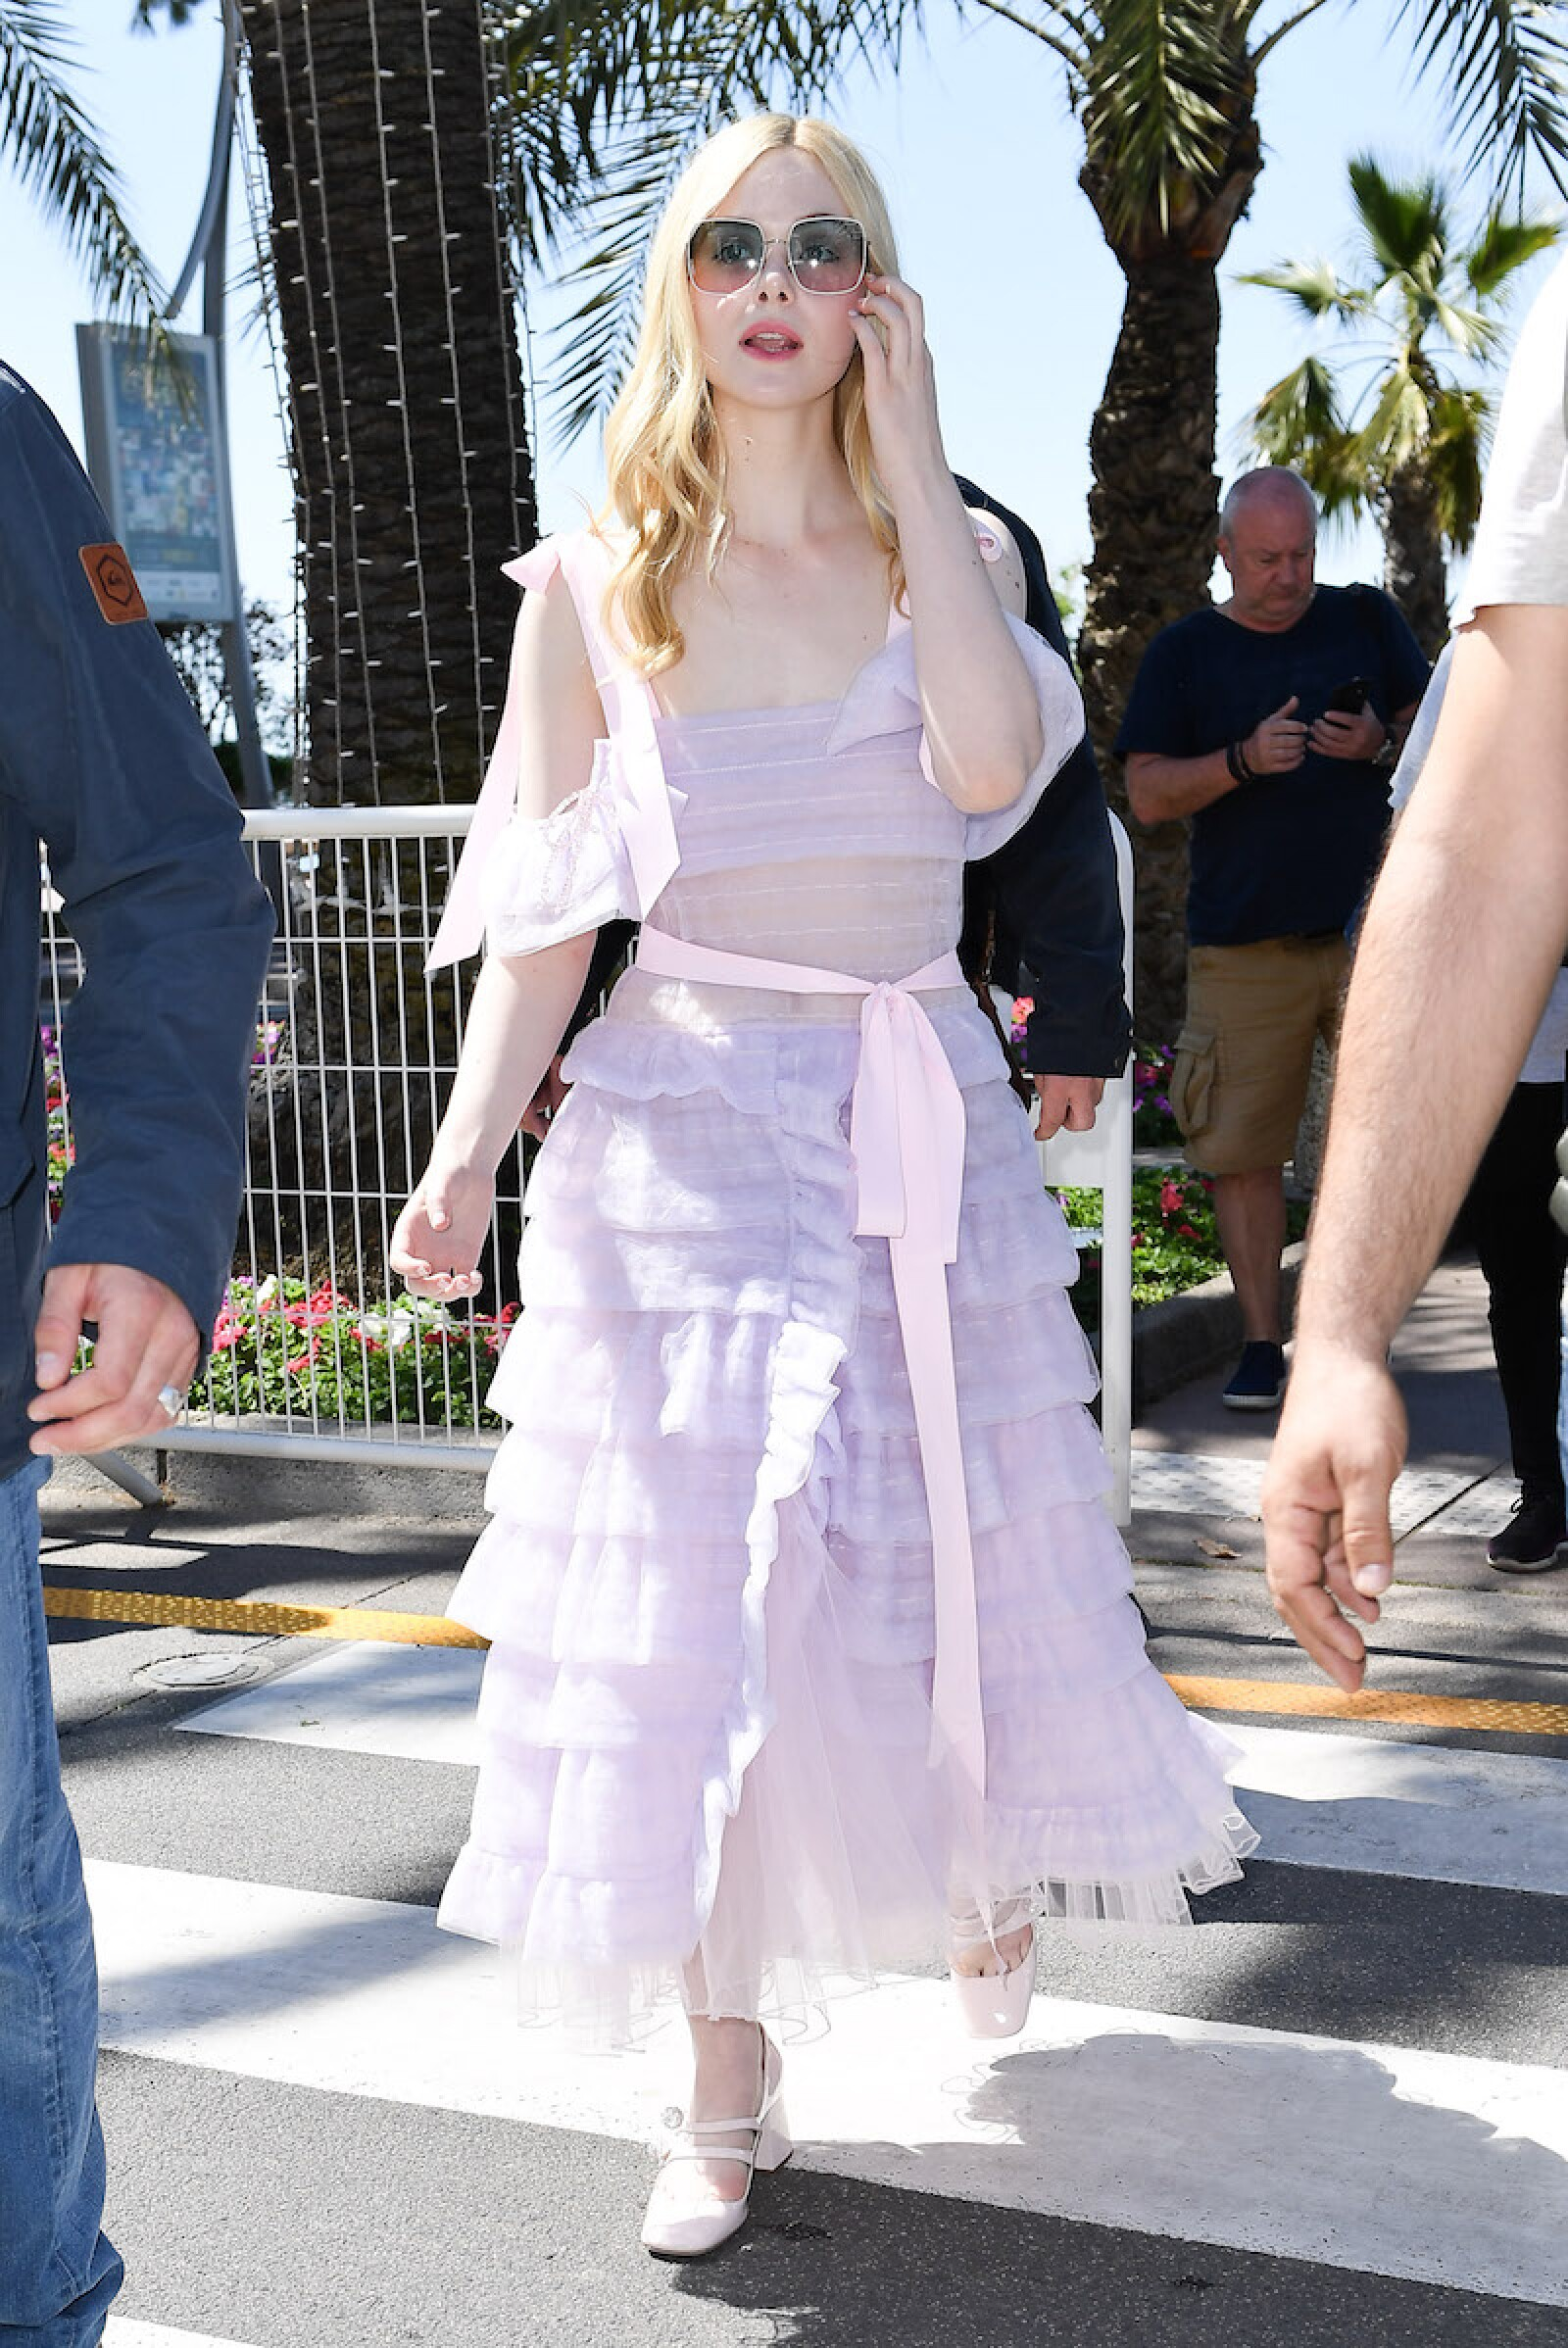 Celebrity Sightings At The 72nd Annual Cannes Film Festival - Day 1